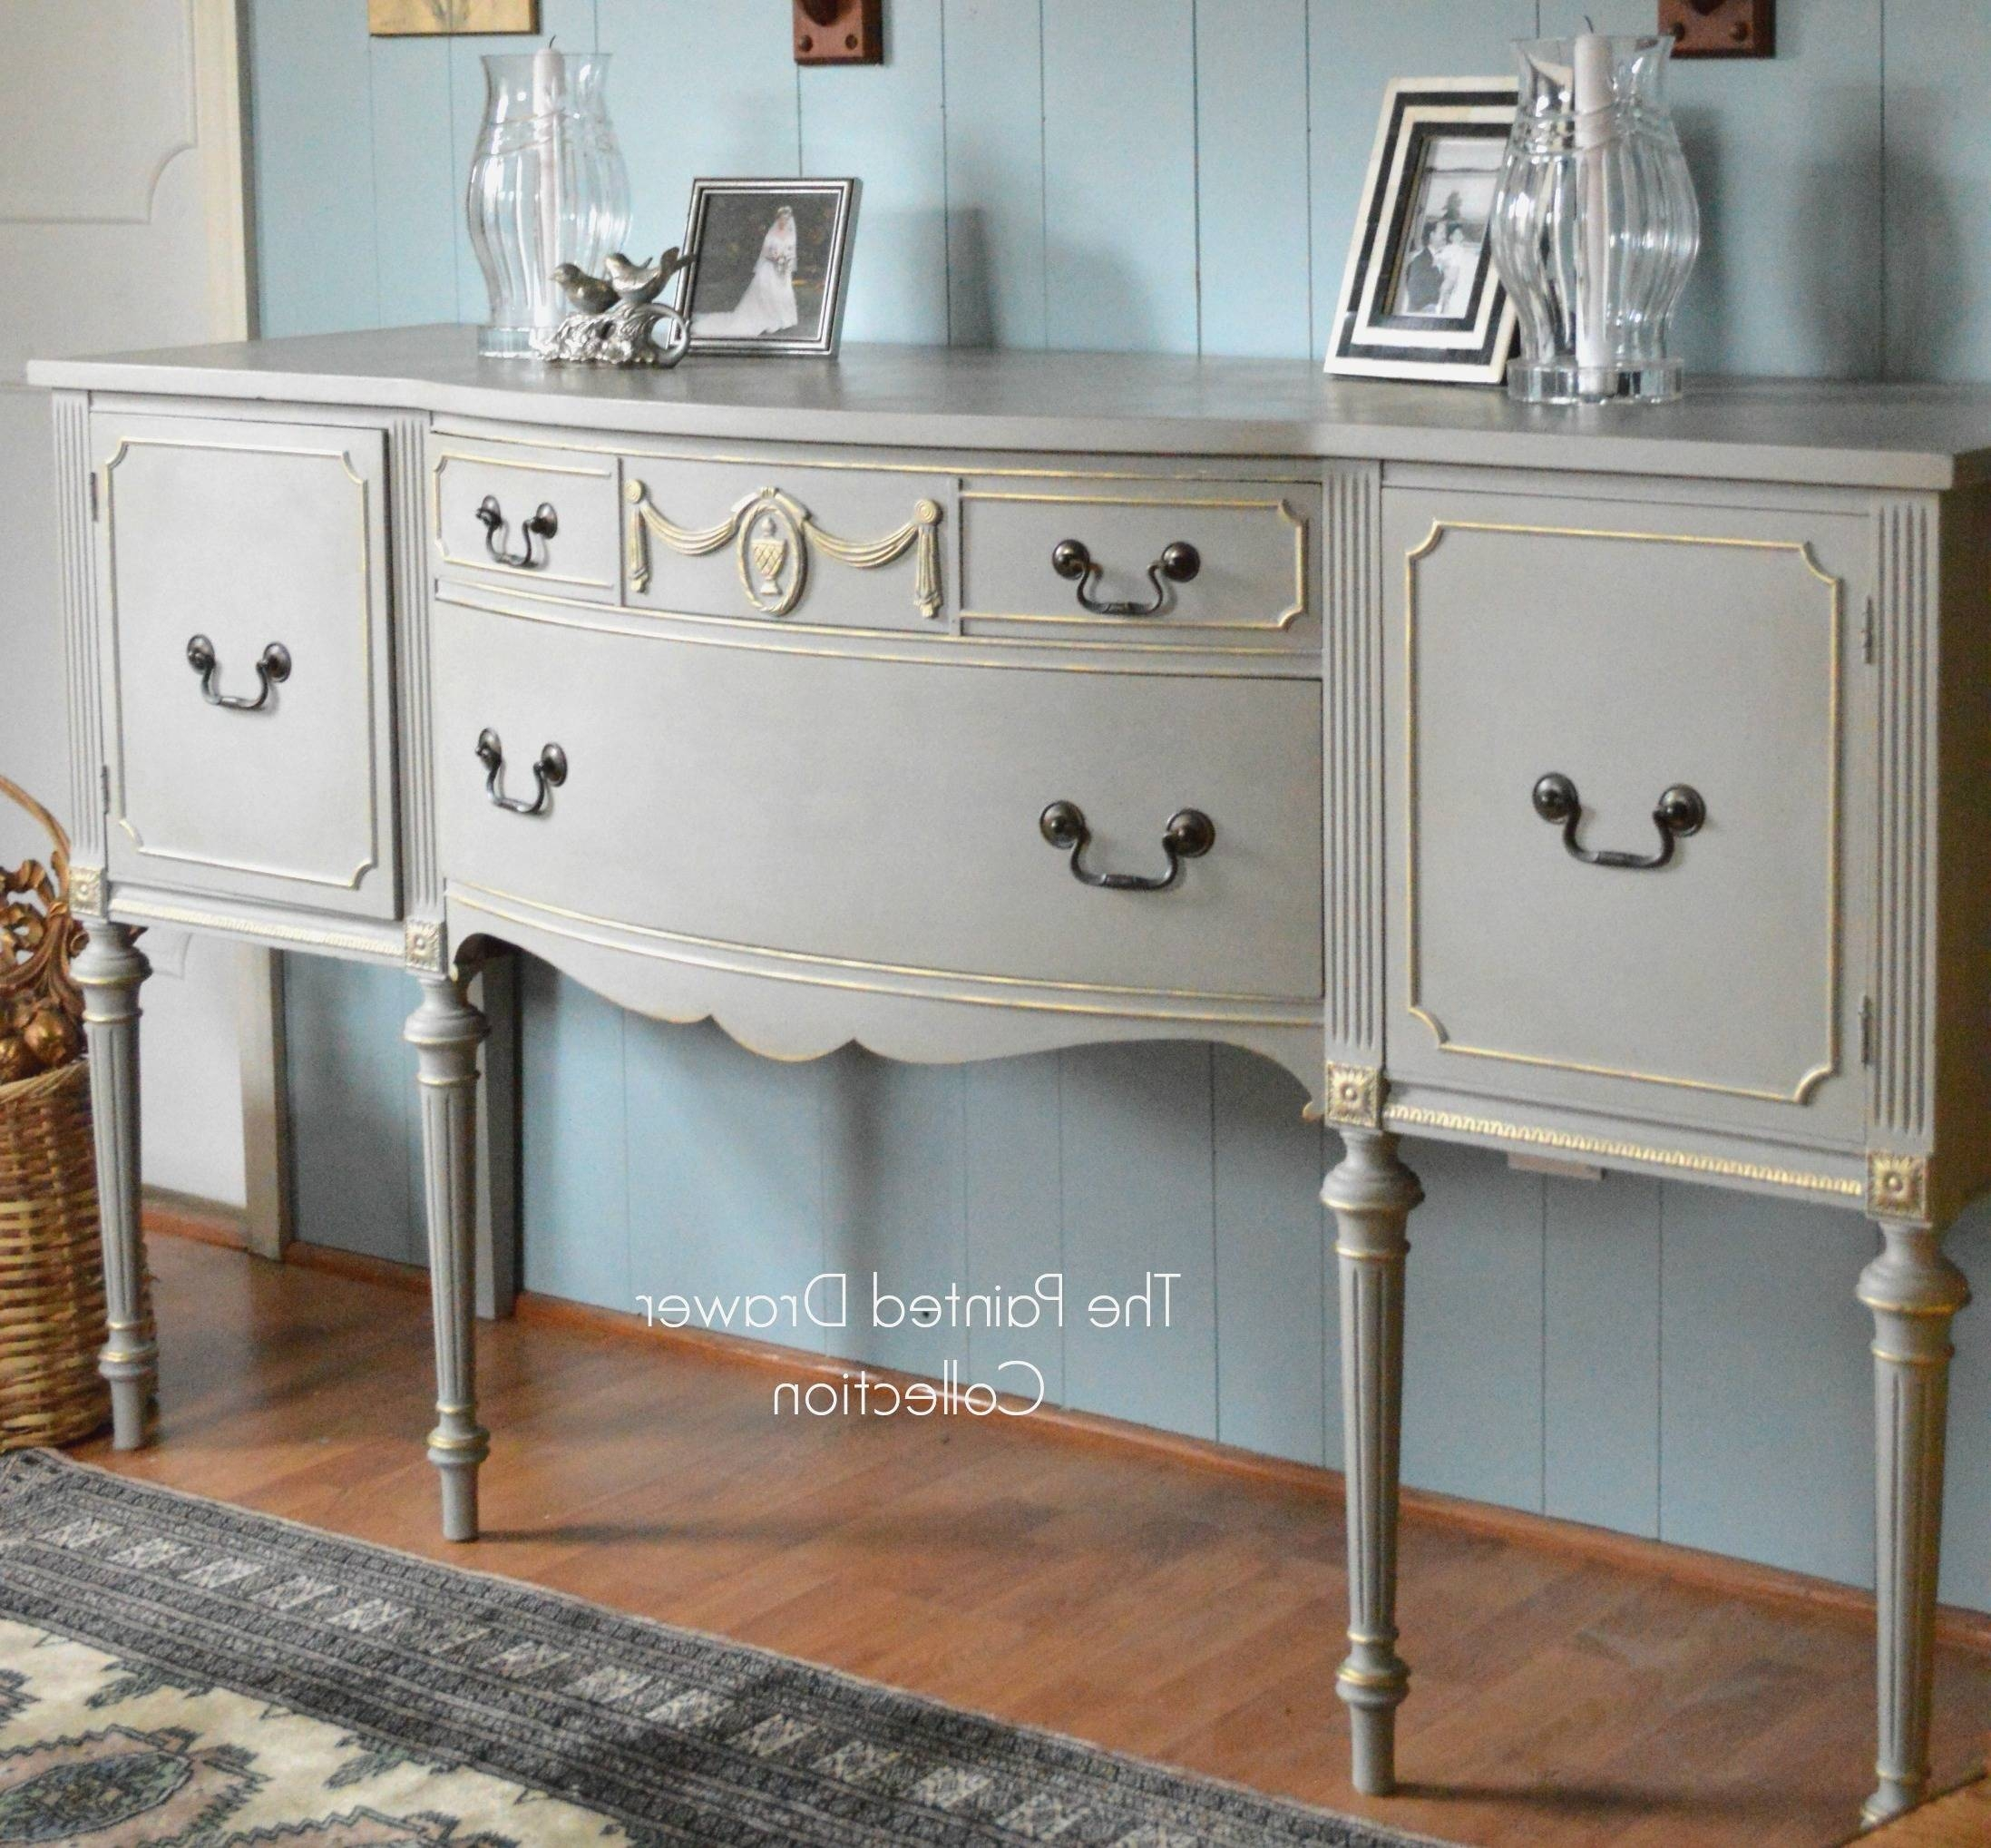 Fresh Vintage Sideboards And Buffets - Bjdgjy in Antique White Sideboards (Image 4 of 15)